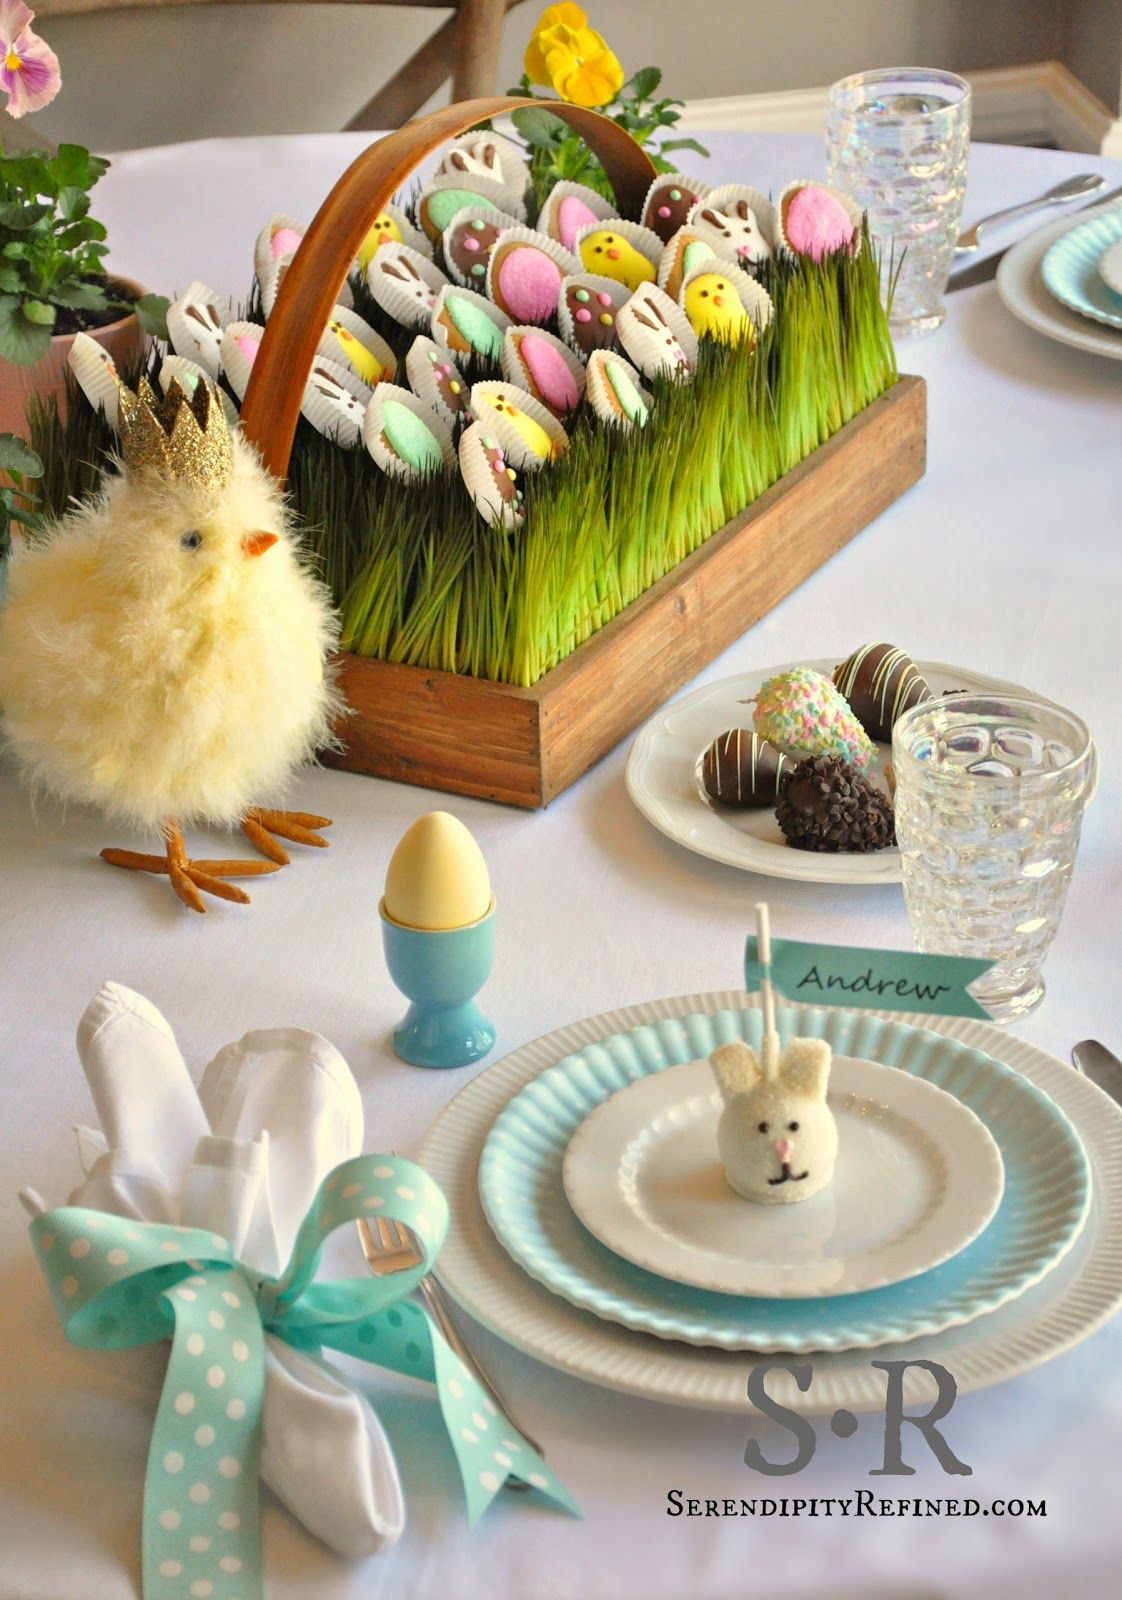 Serendipity Refined Blog Pastel Spring EDIBLE Easter